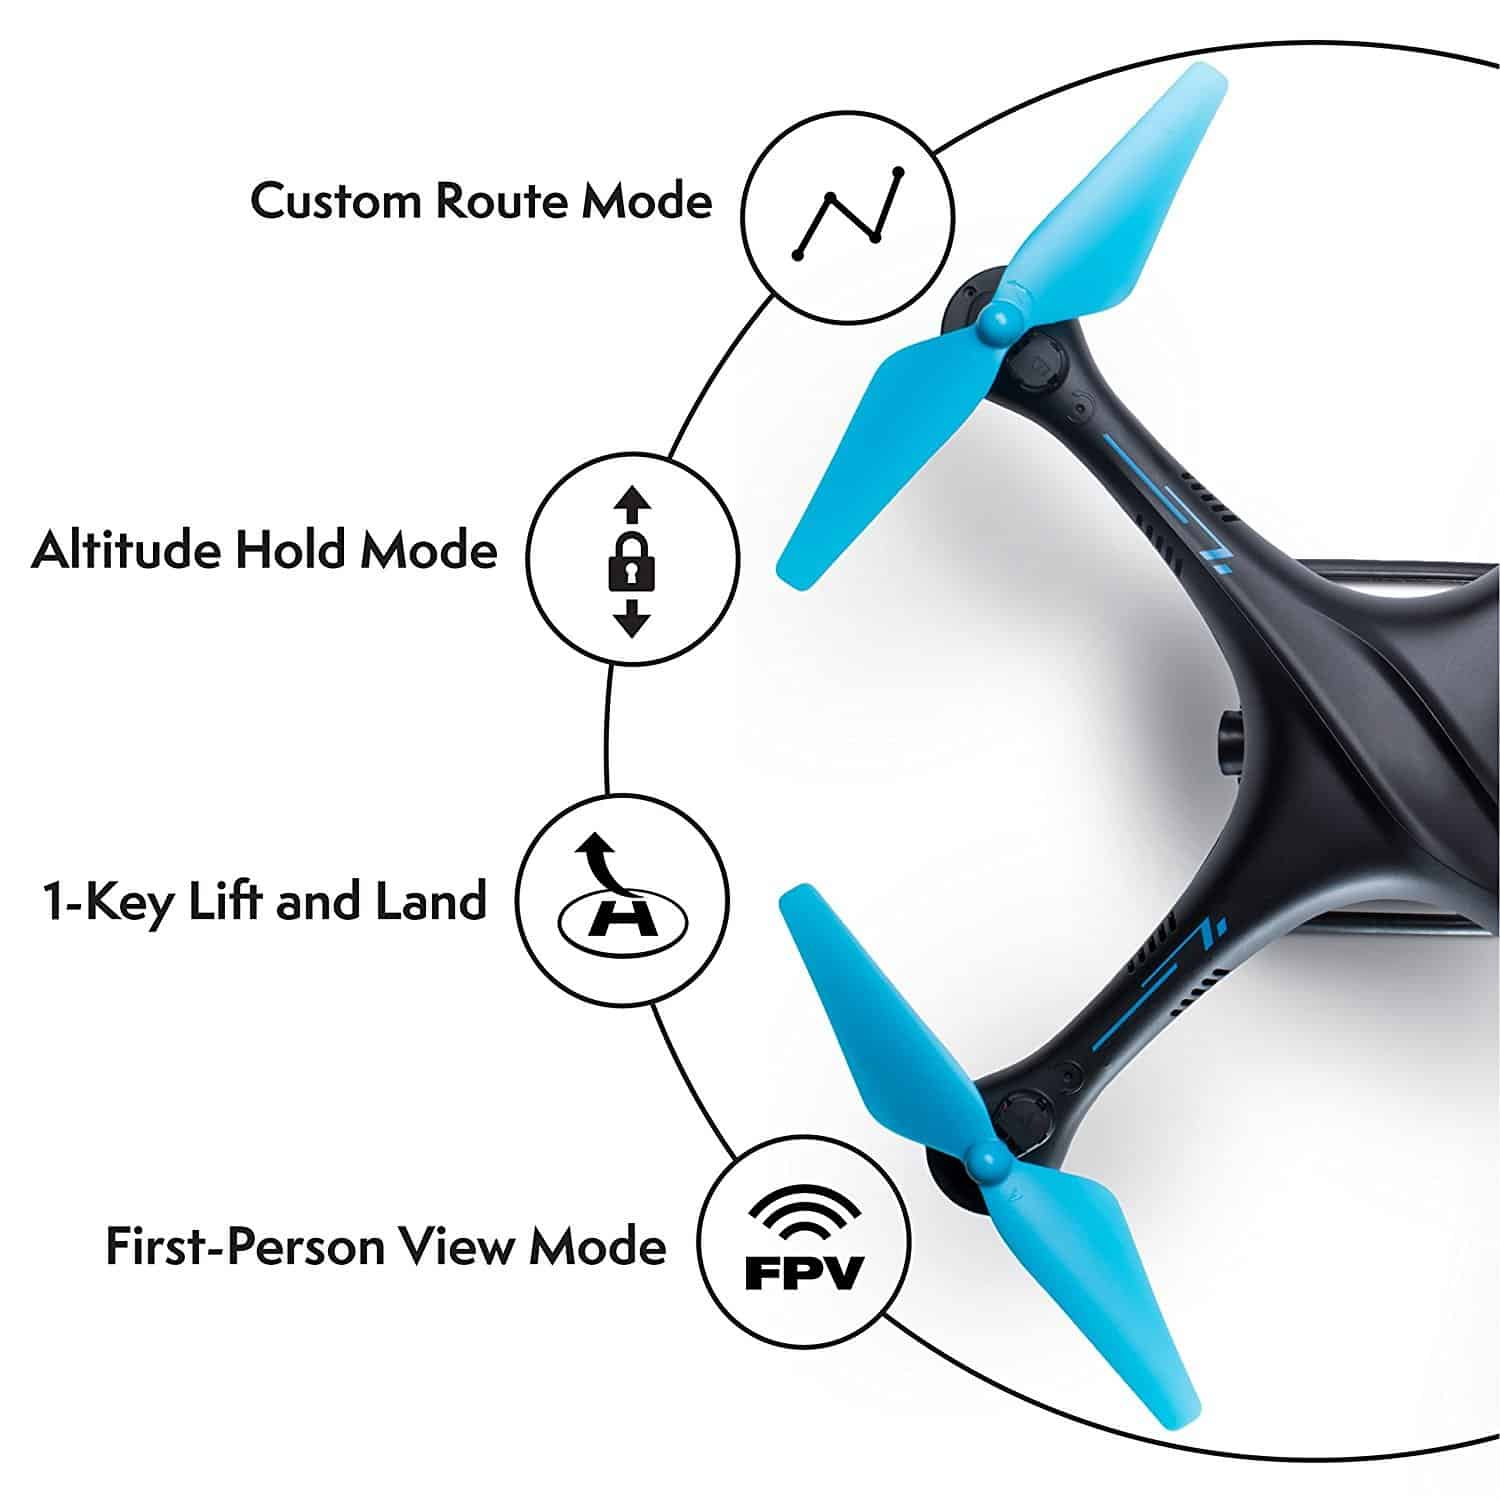 Top 20 Remote Control Drones For Sale Compare And Shop Rc Eagle 2 45 Lift Wiring Diagram An Error Occurred